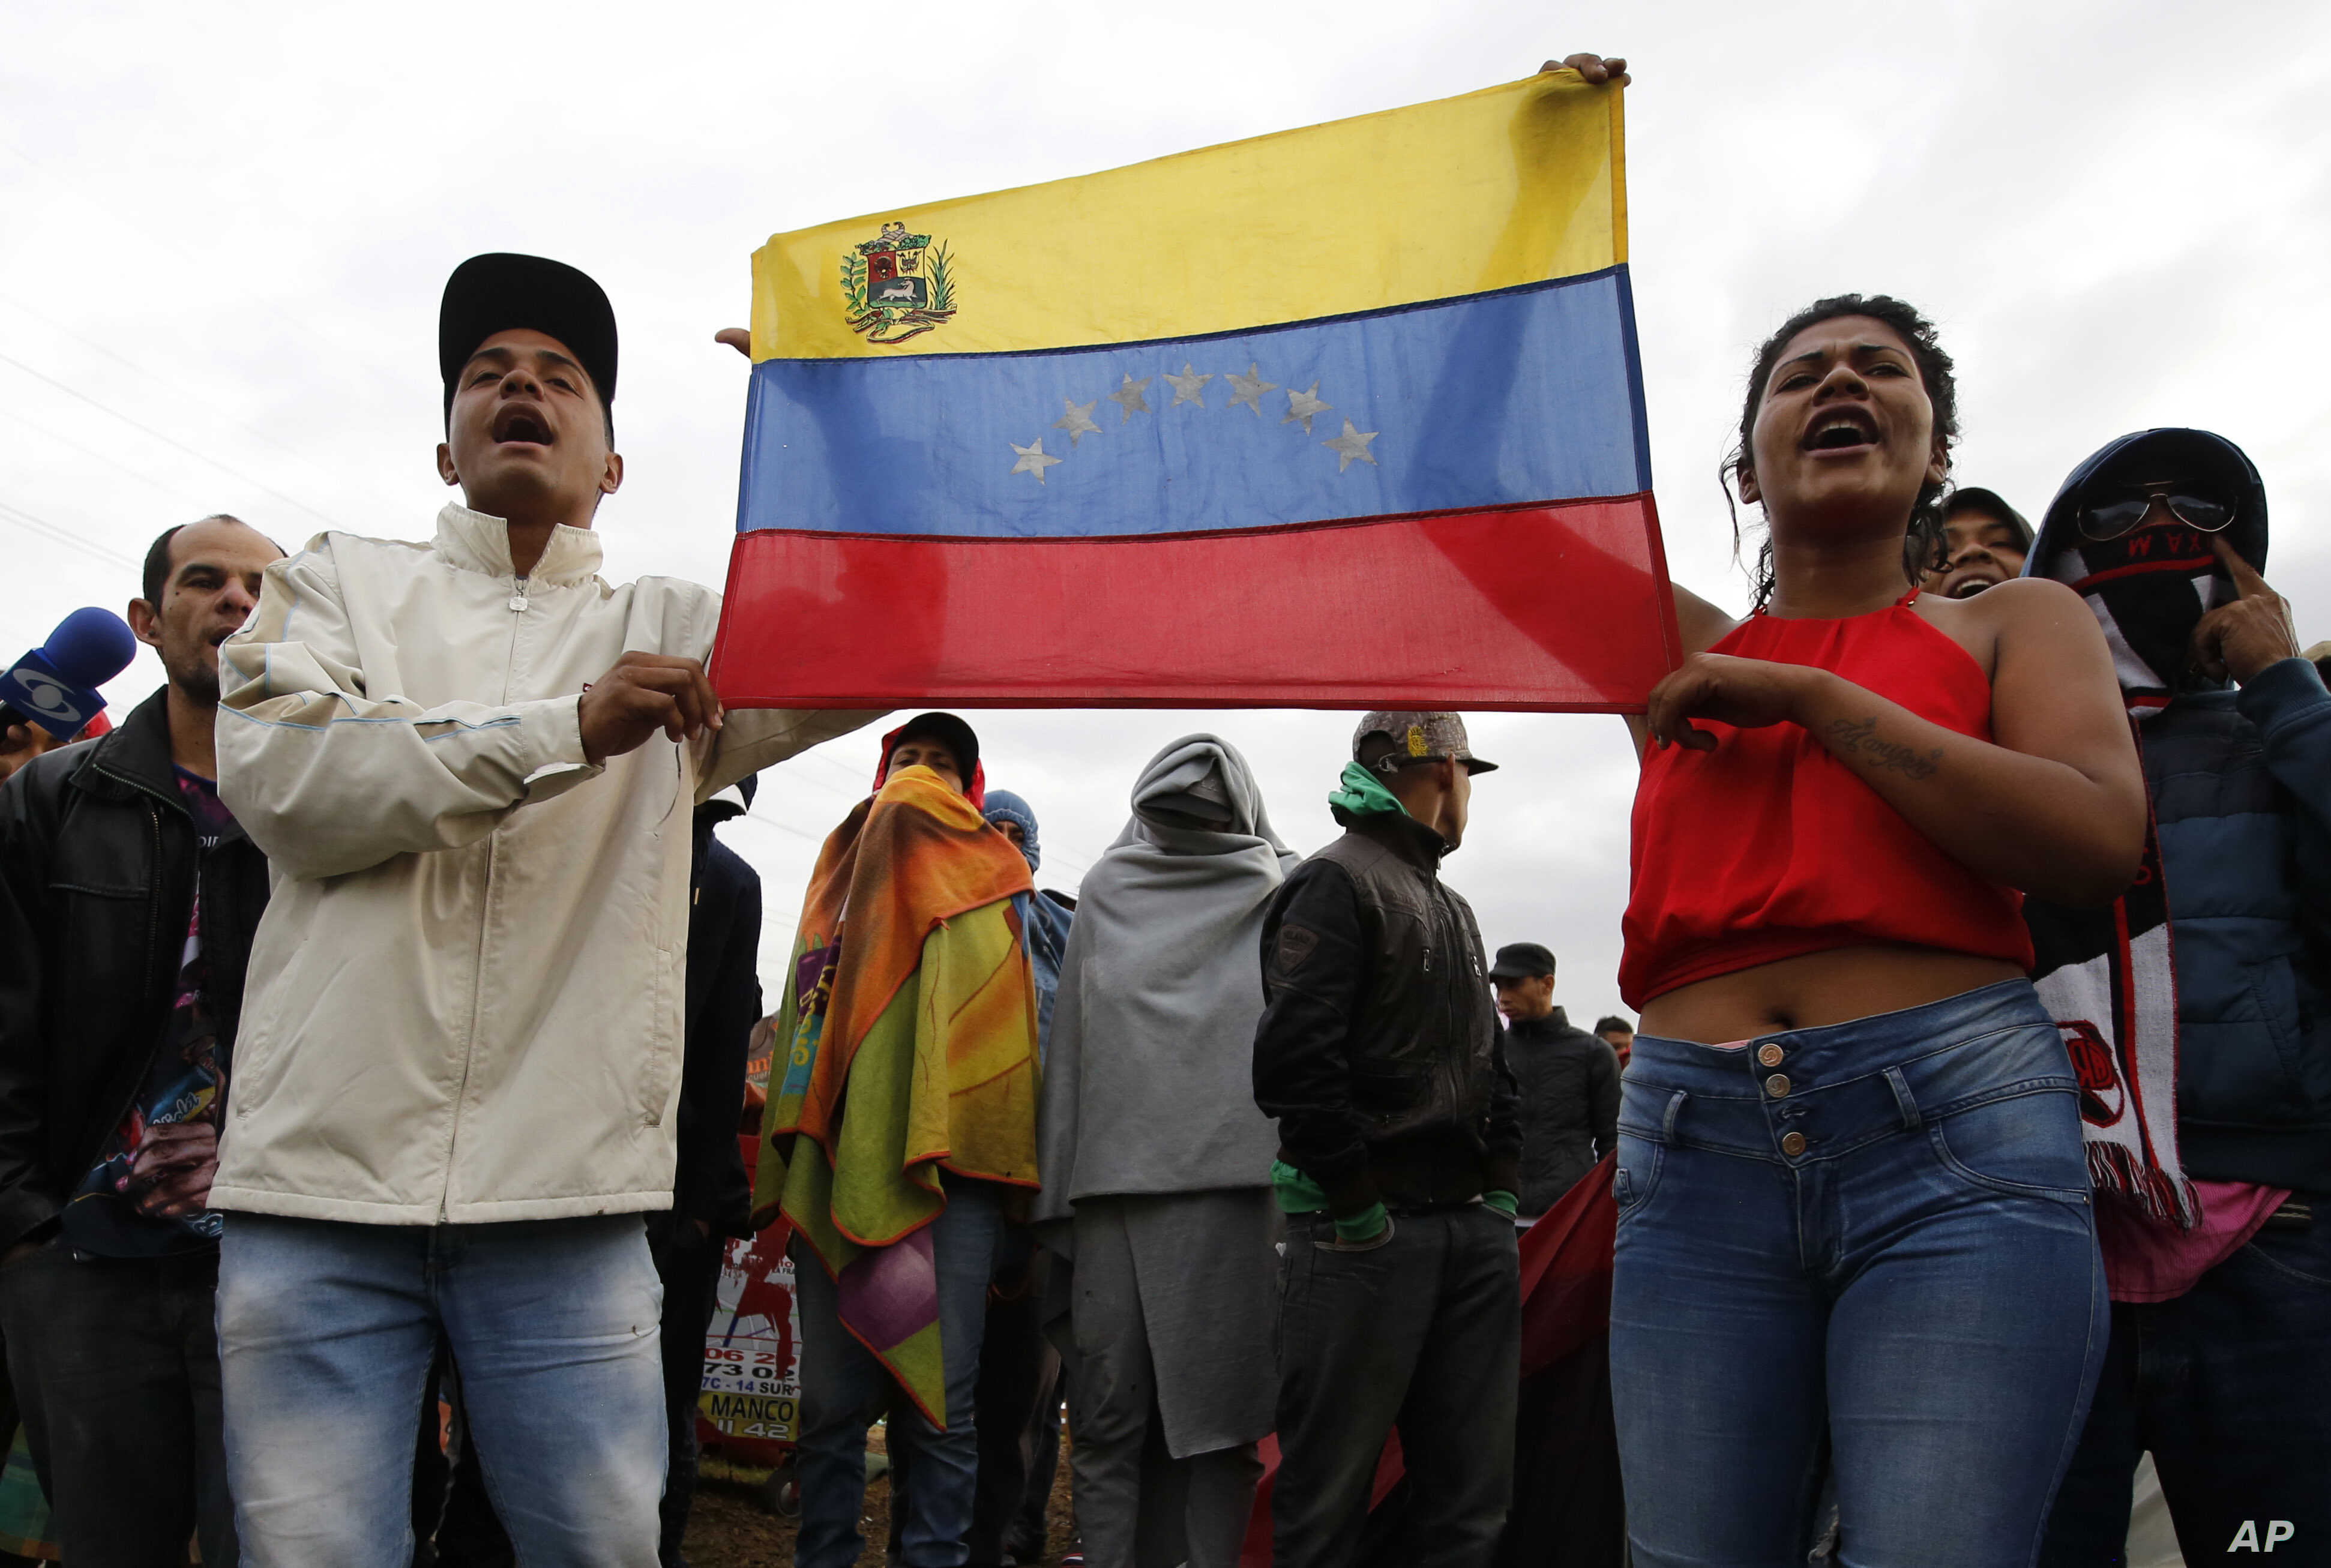 Venezuelan migrants protest the creation of a new, government-organized camp, which migrants can move to voluntarily, as they stand outside their current tent city near the main bus terminal in Bogota, Colombia, Nov. 13, 2018.